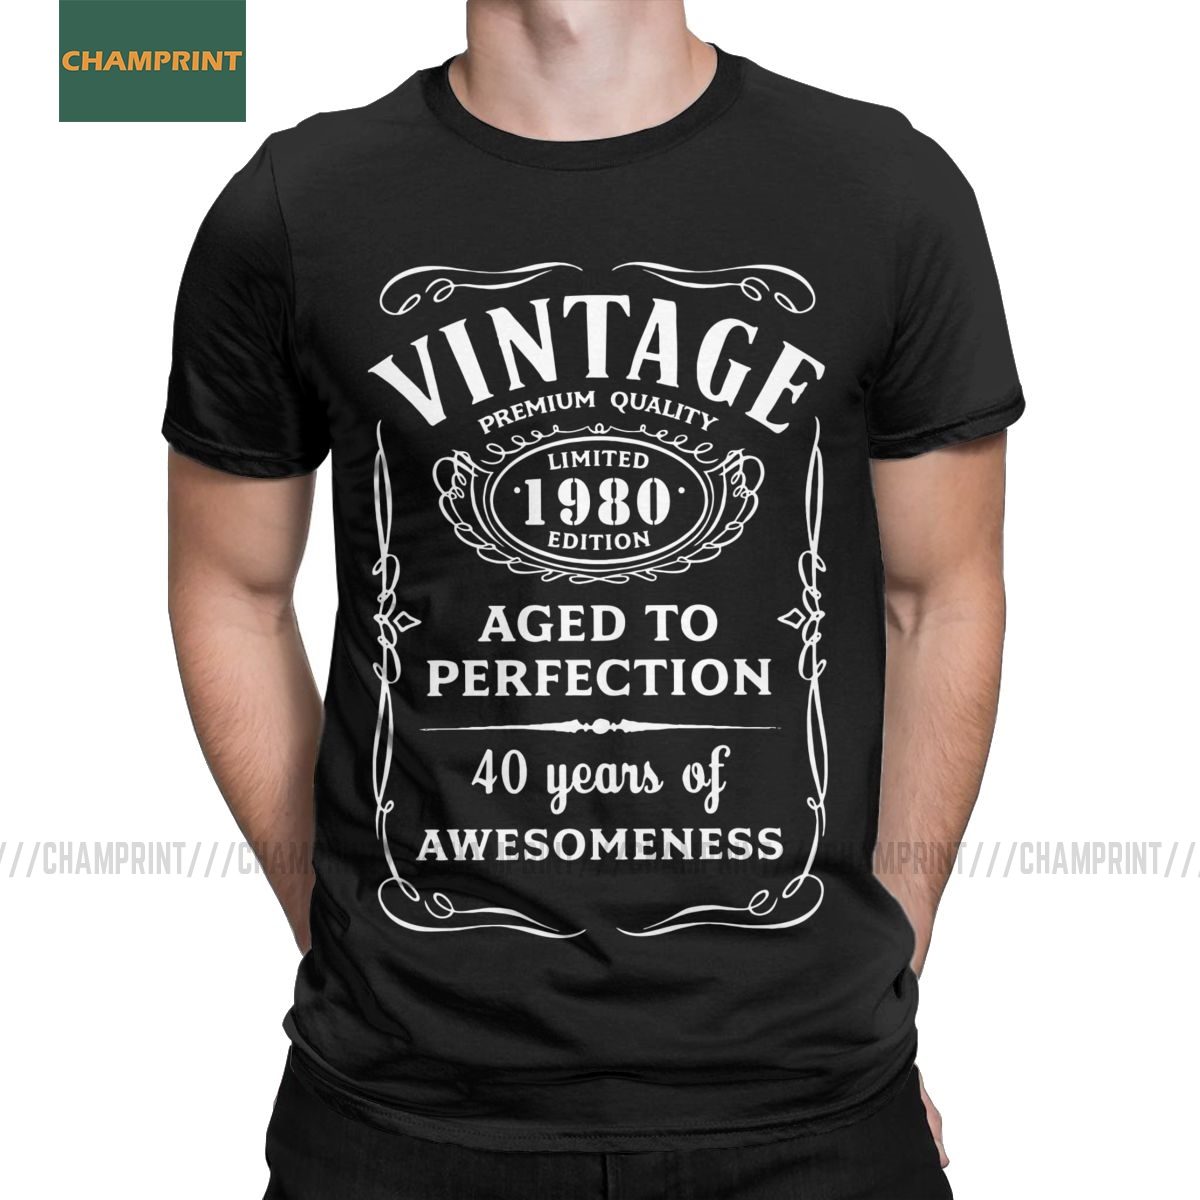 Vintage Limited 1980 Edition T Shirts For Men Cotton 40 T Shirt T-Shirts Round Neck 40th Birthday Gift Tee Shirt Short Sleeve